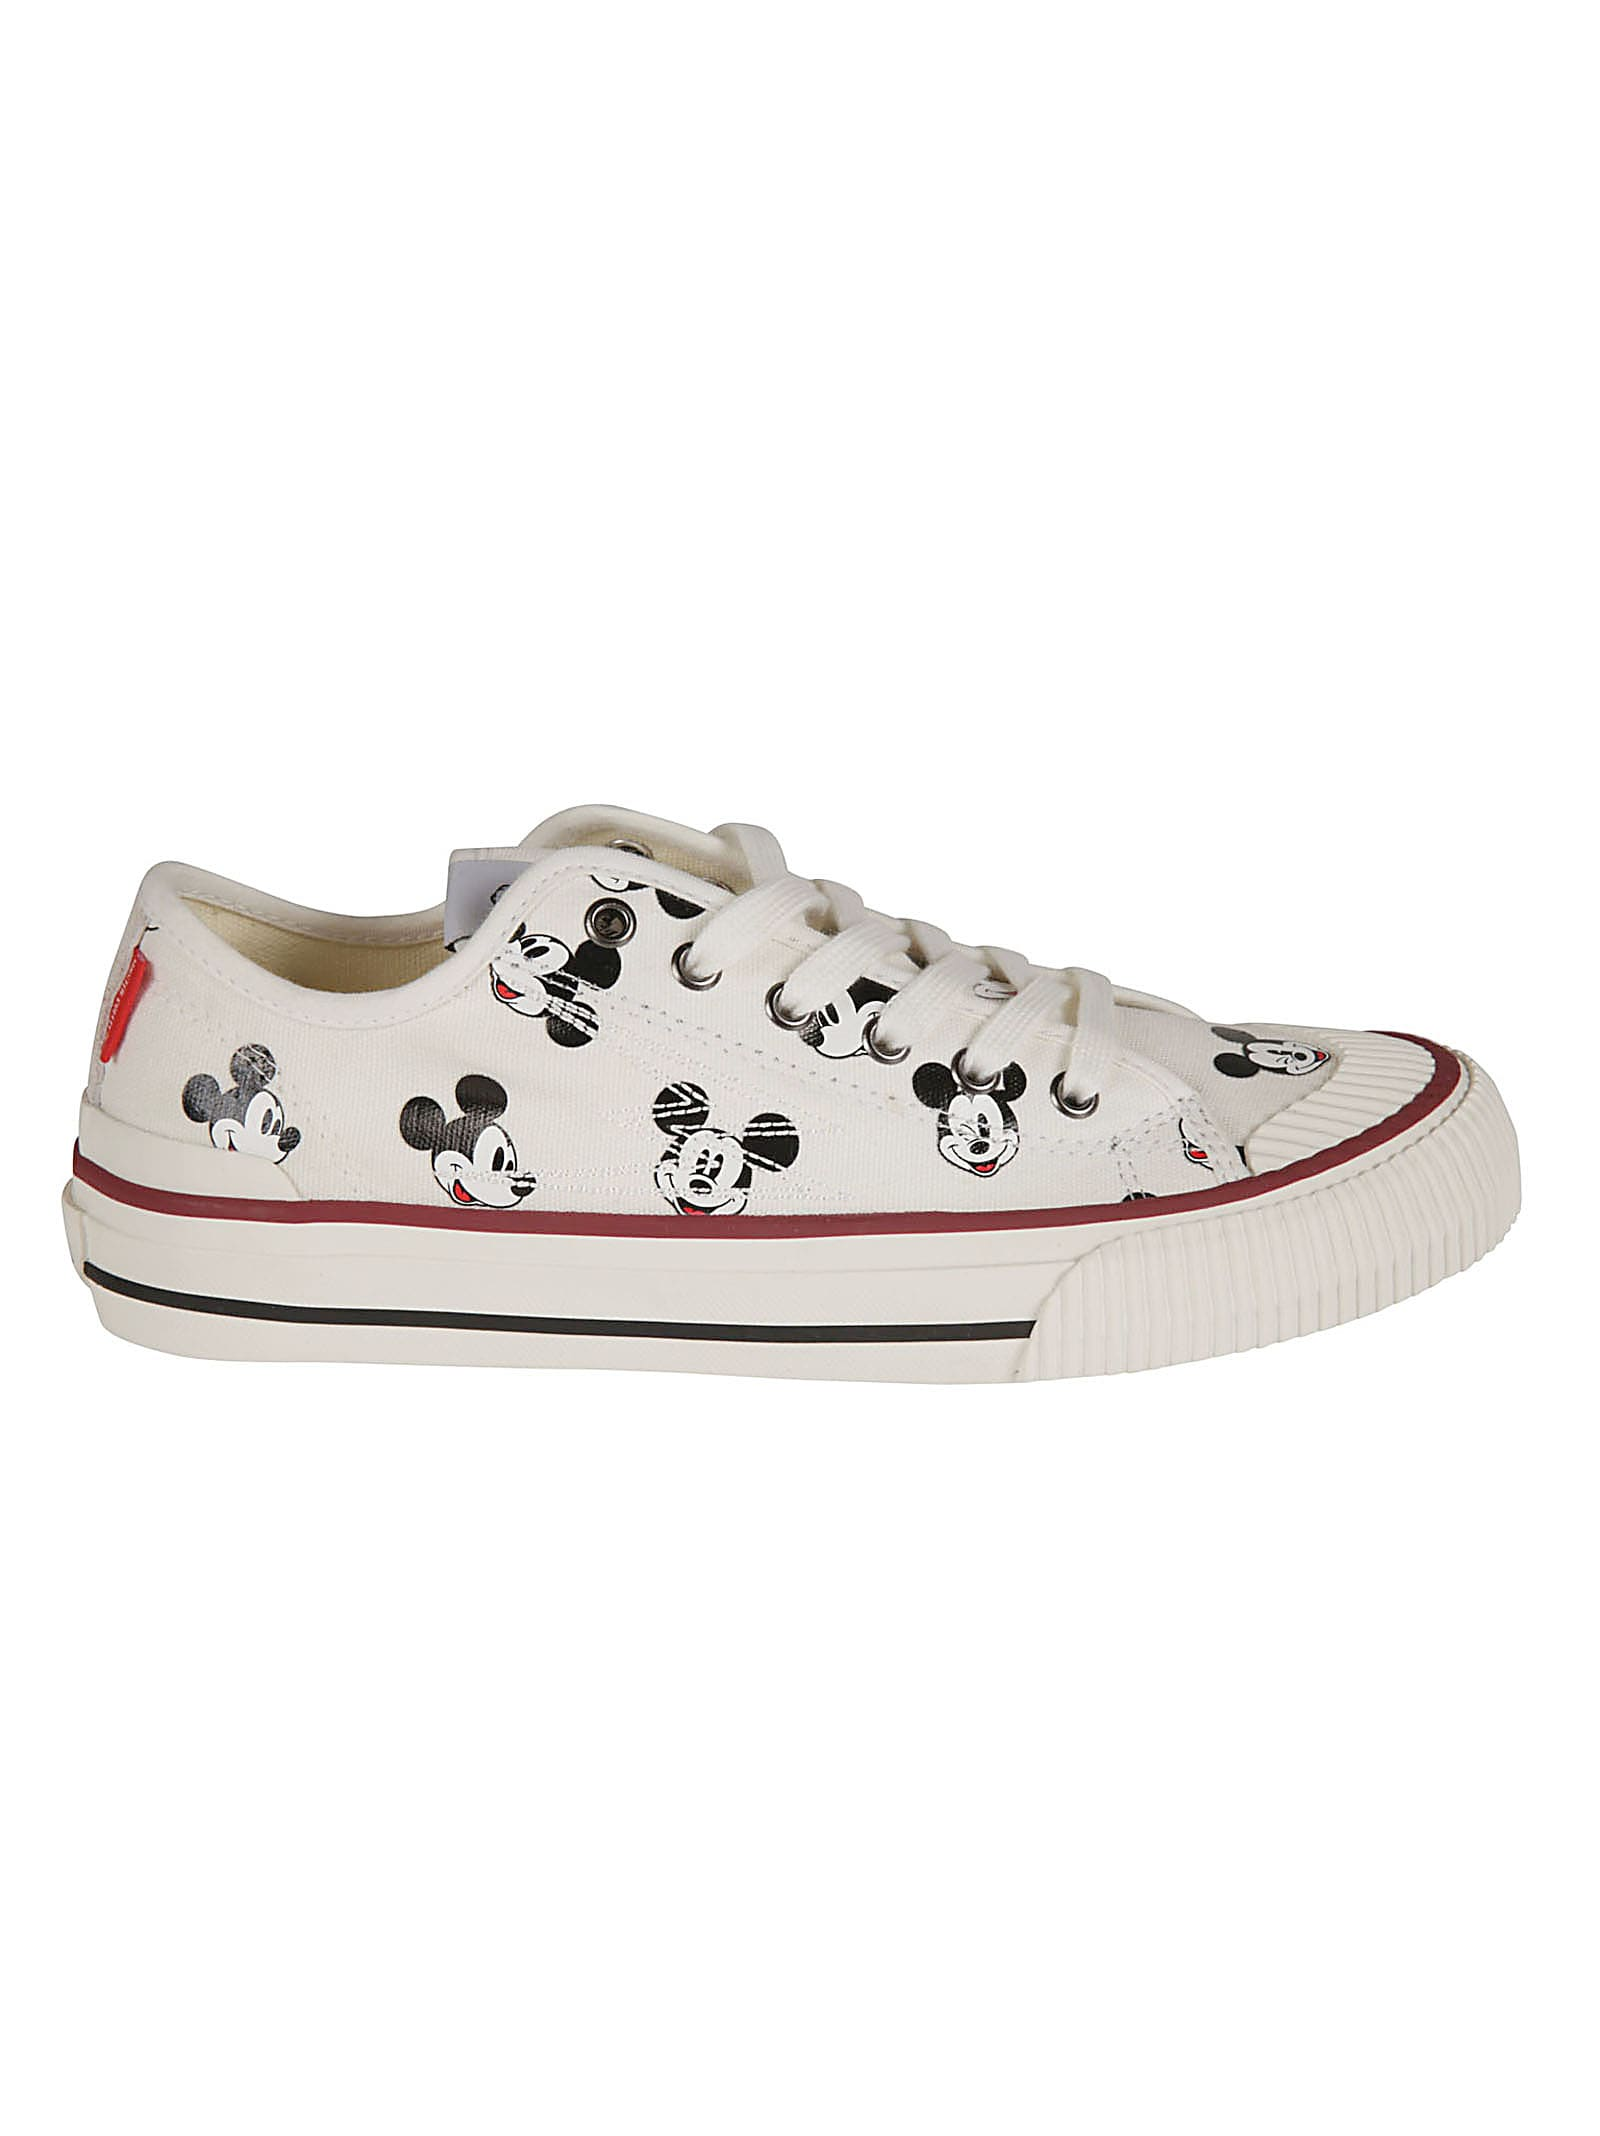 Moa Master Of Arts Sneakers MASTER COLLECTOR SLIP-ON SNEAKERS